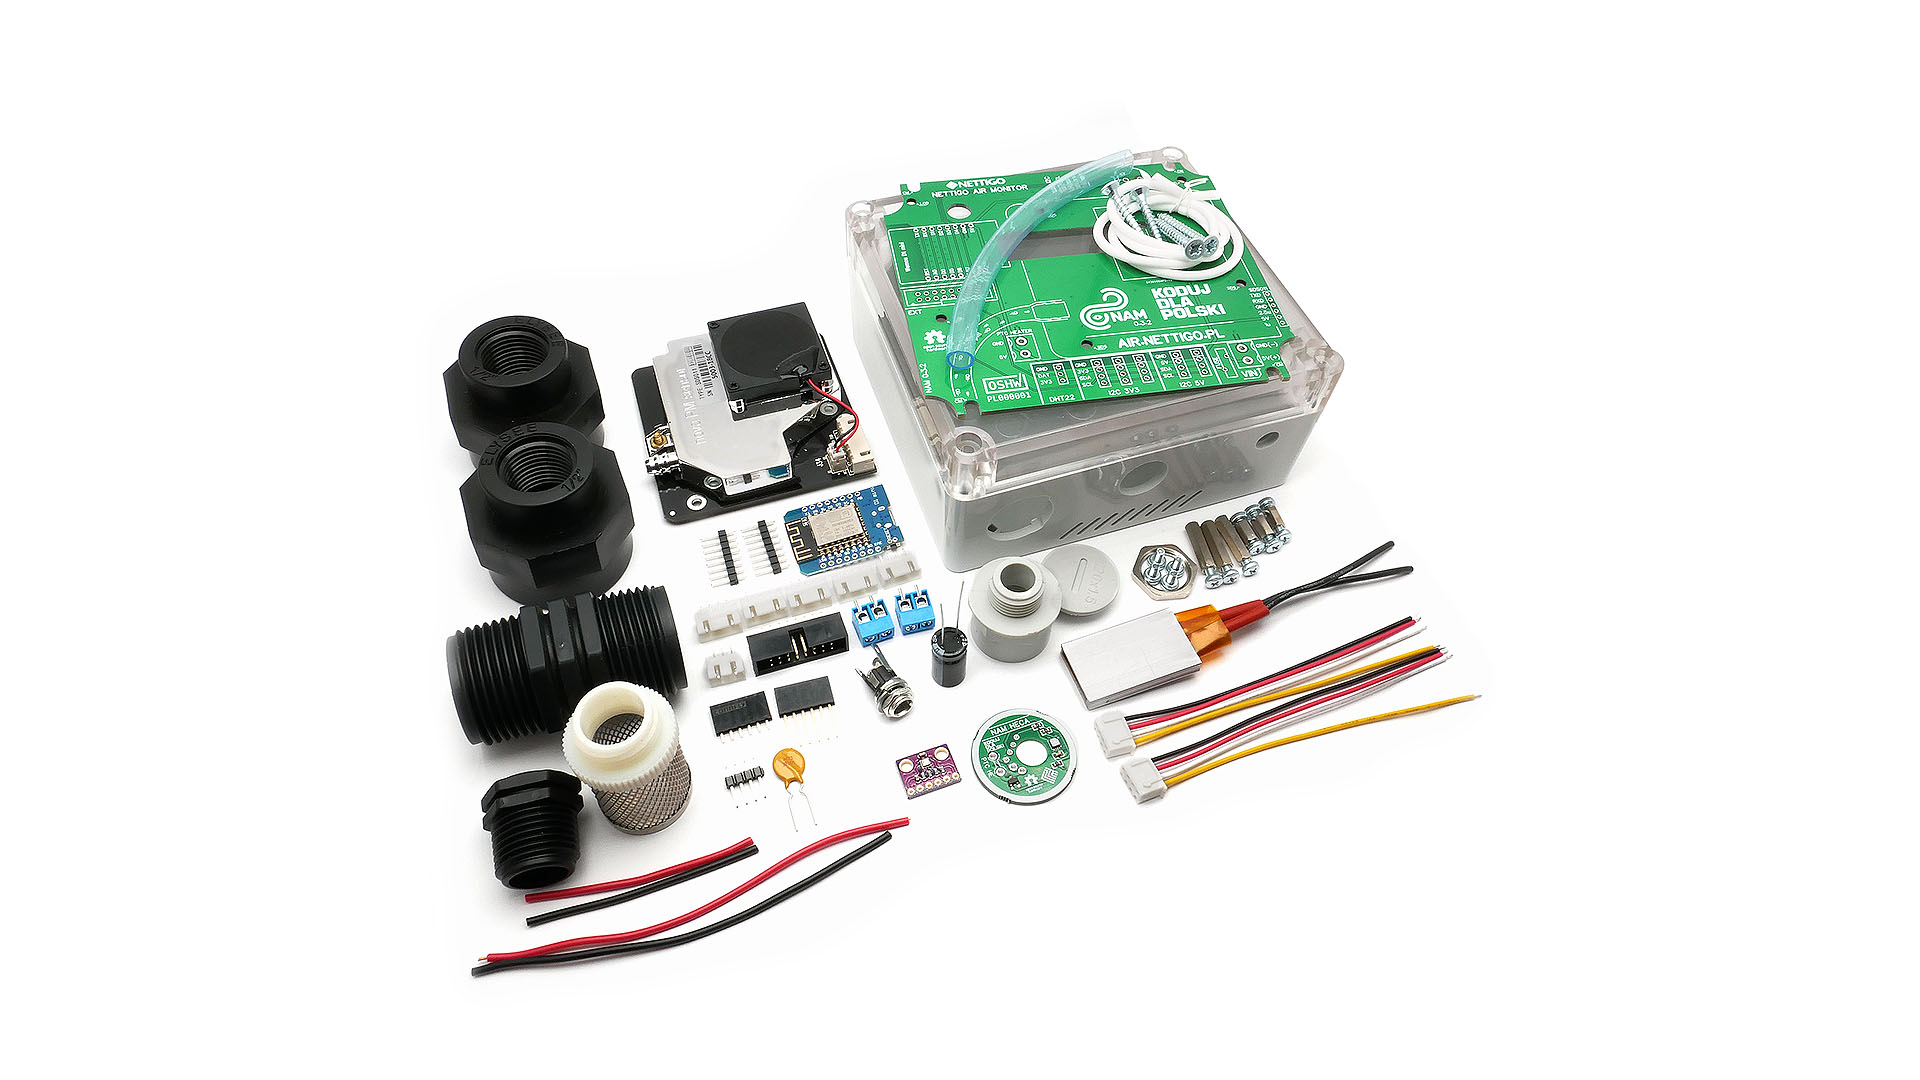 Nettigo Air Monitor (KIT 0 3 1) - Build your own smog sensor!